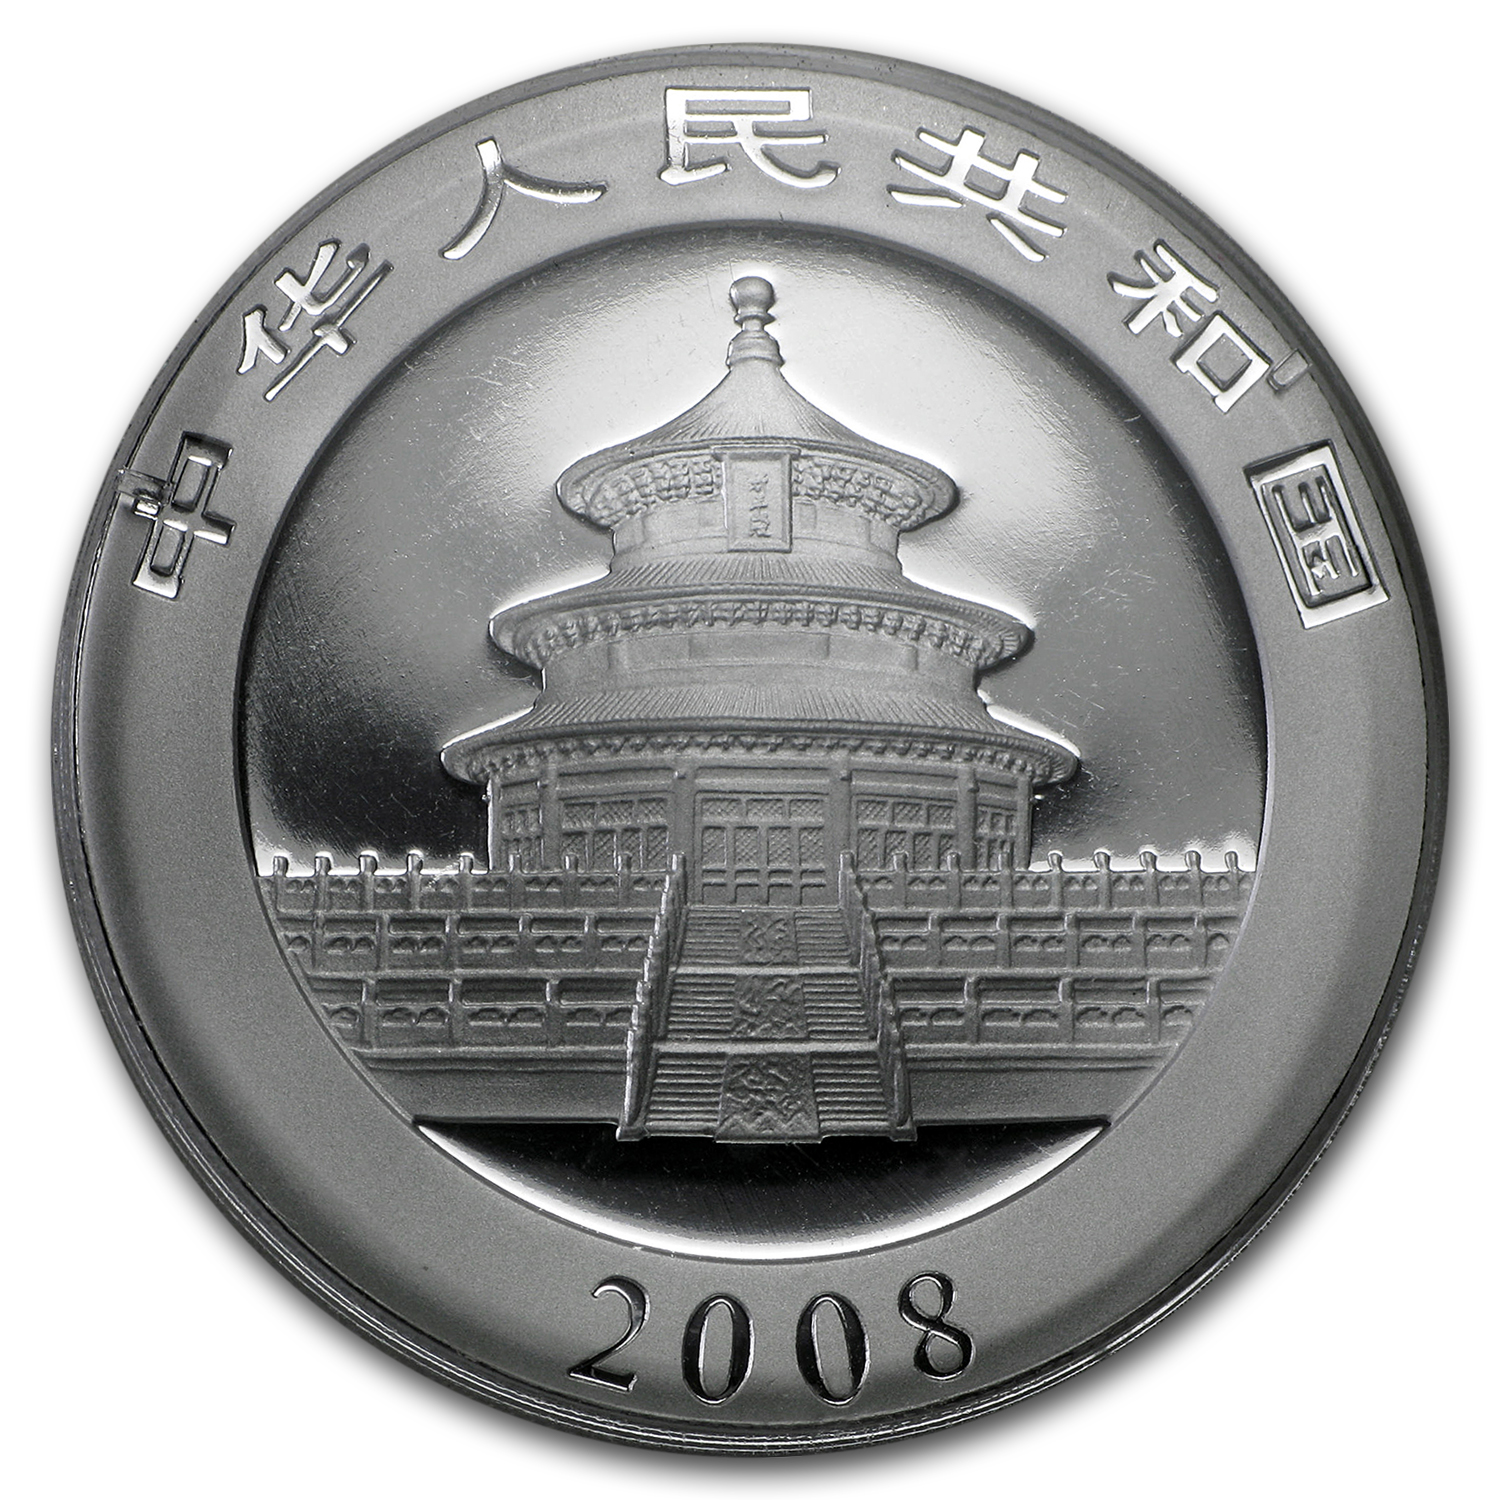 2008 1 oz Silver Chinese Panda - (In Capsule)